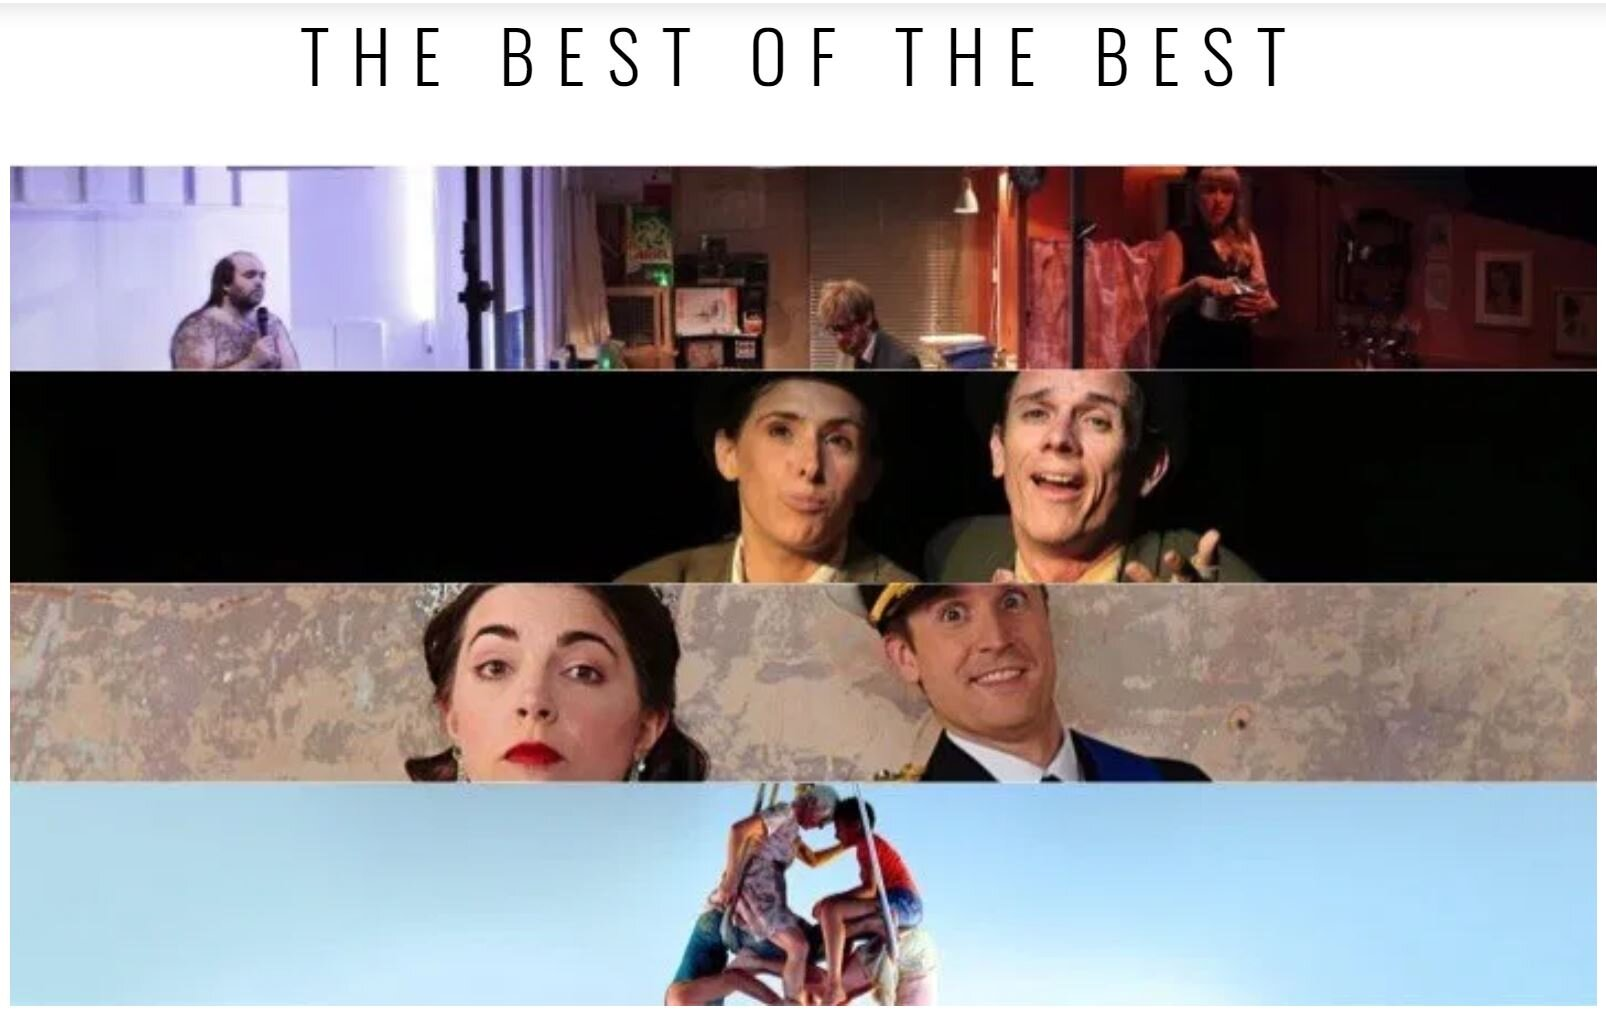 In a 2019 Fringe look-back, 2ELFth Night was listed among the Best of the Best at Edinburgh, and coming in at the top of the List's COMPANY'S TO WATCH!